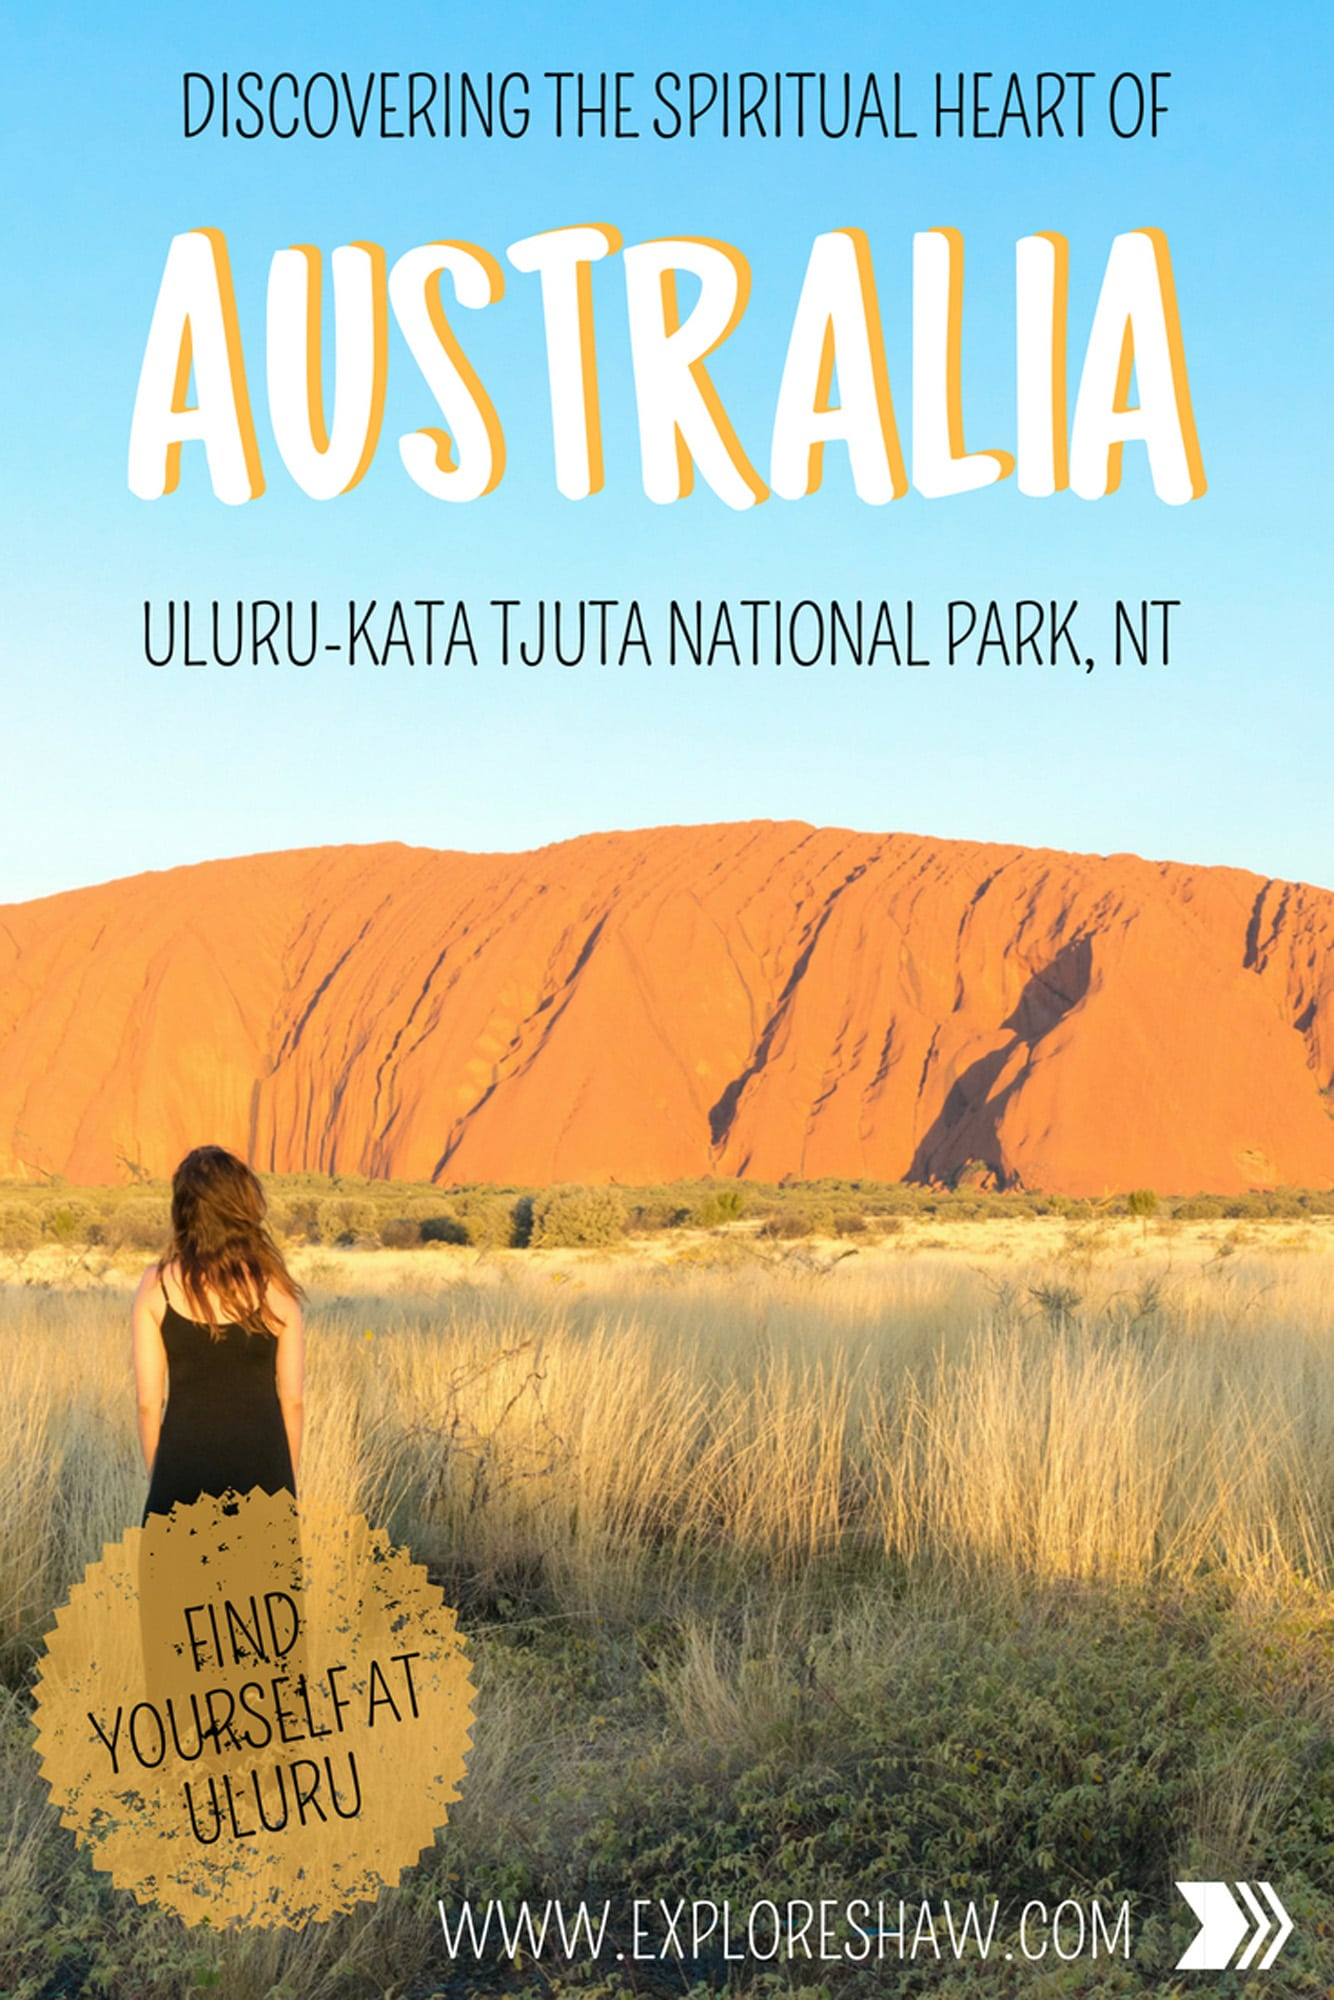 DISCOVERING THE SPIRITUAL HEART OF AUSTRALIA